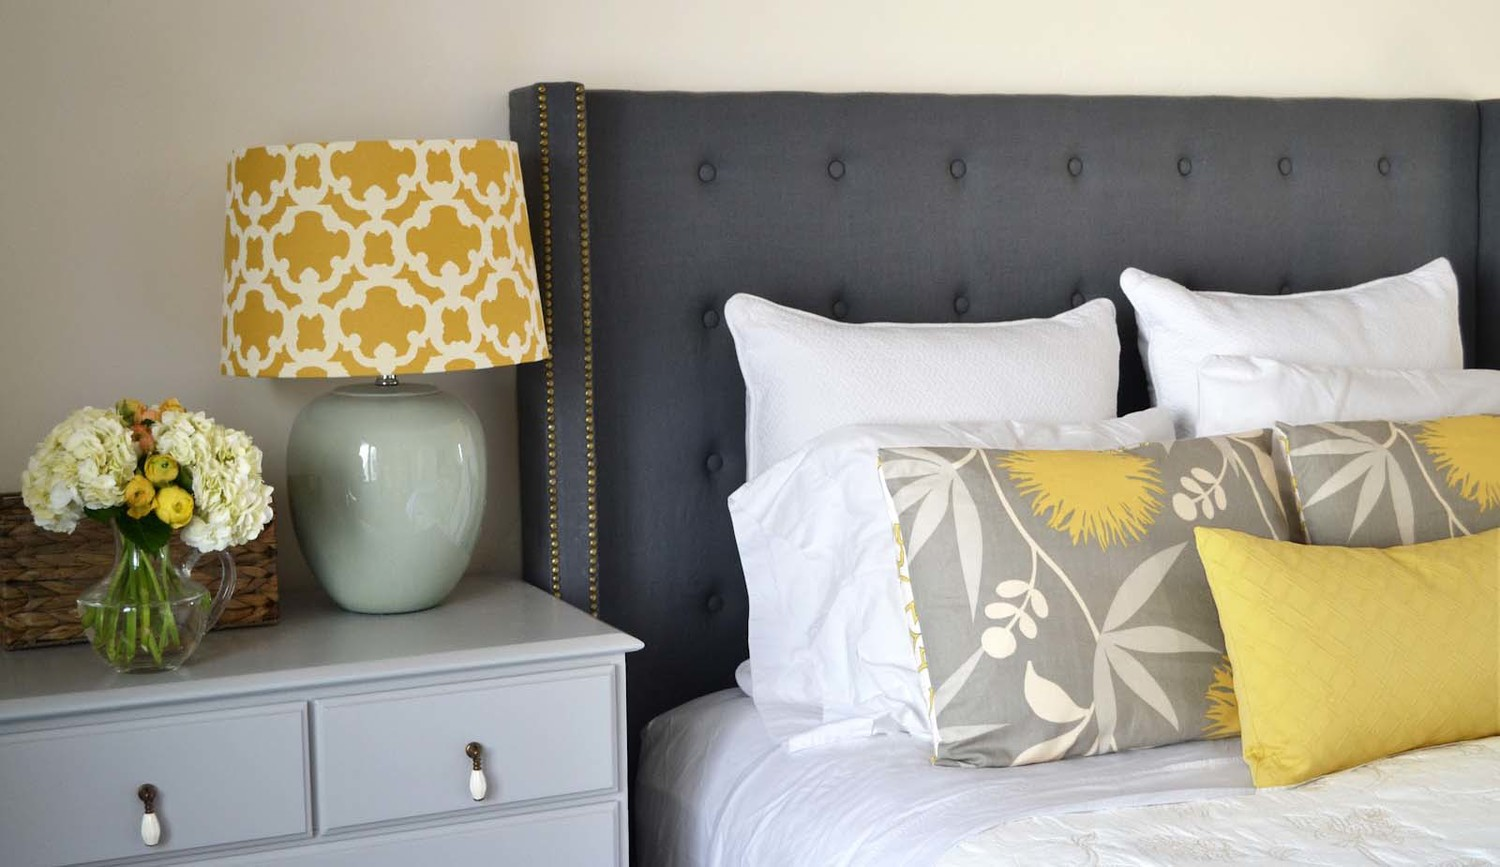 Simple Ways To Decorate Your Bedroom 10 Ridiculously Simple Ways To Jazz Up Your Bedroom Without